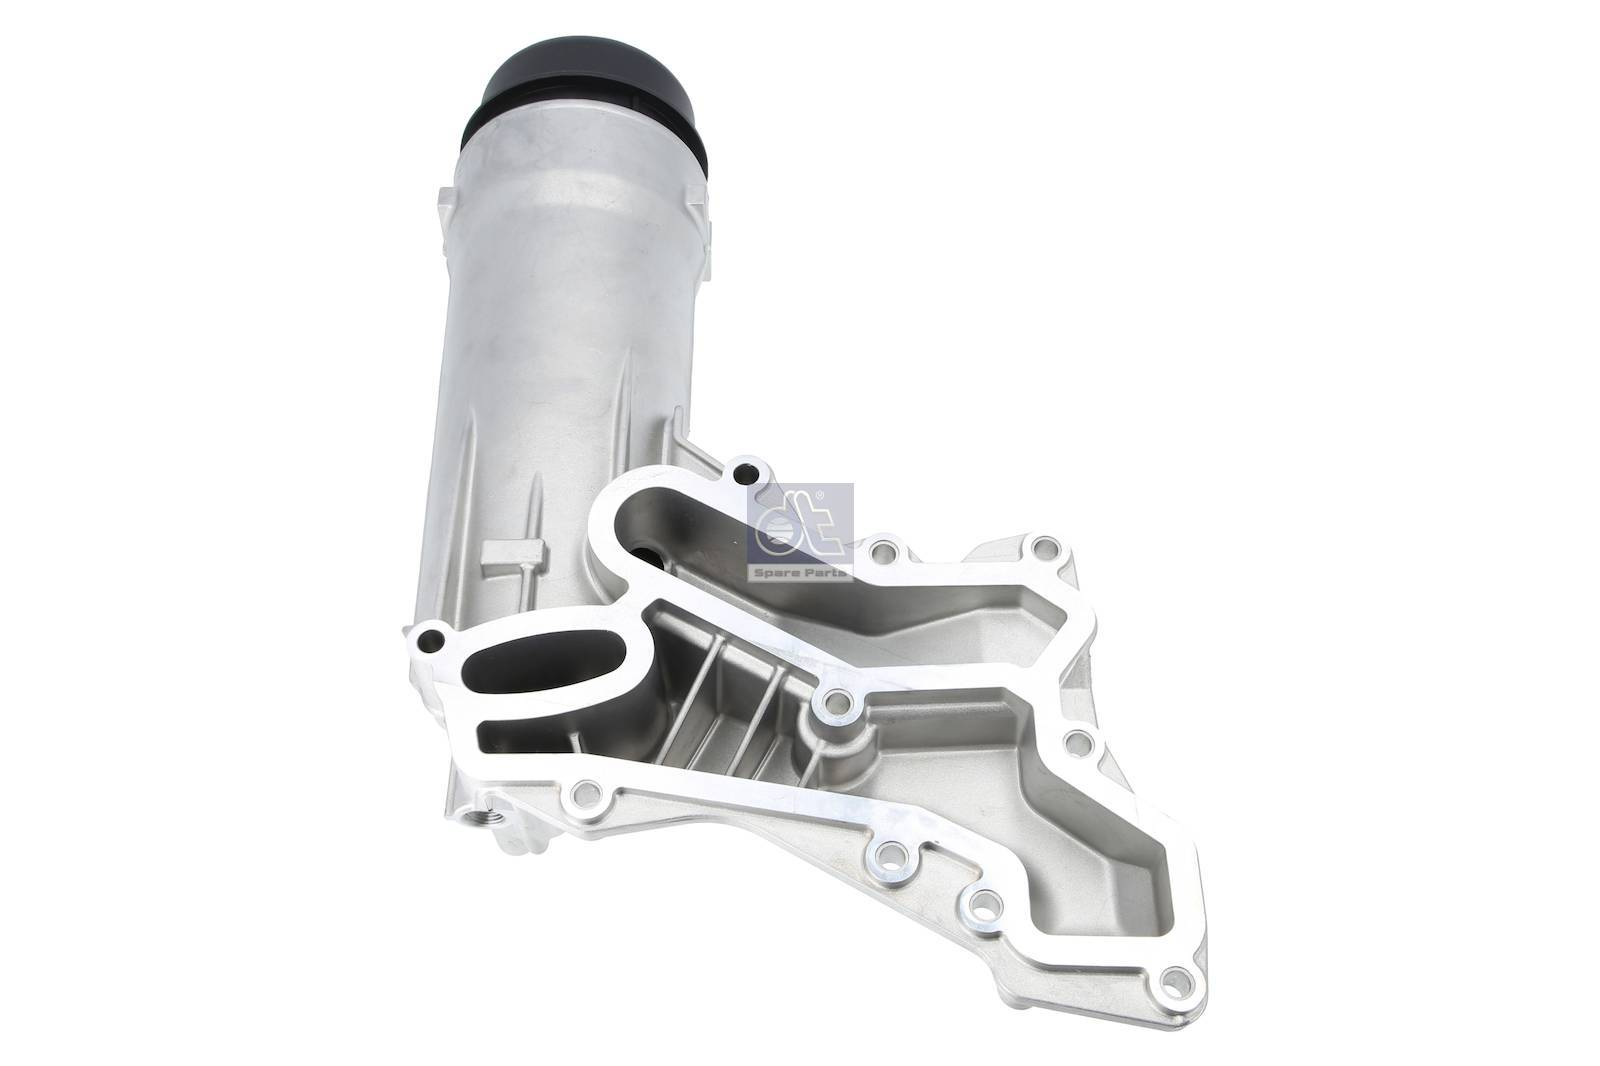 Oil filter housing, without filter